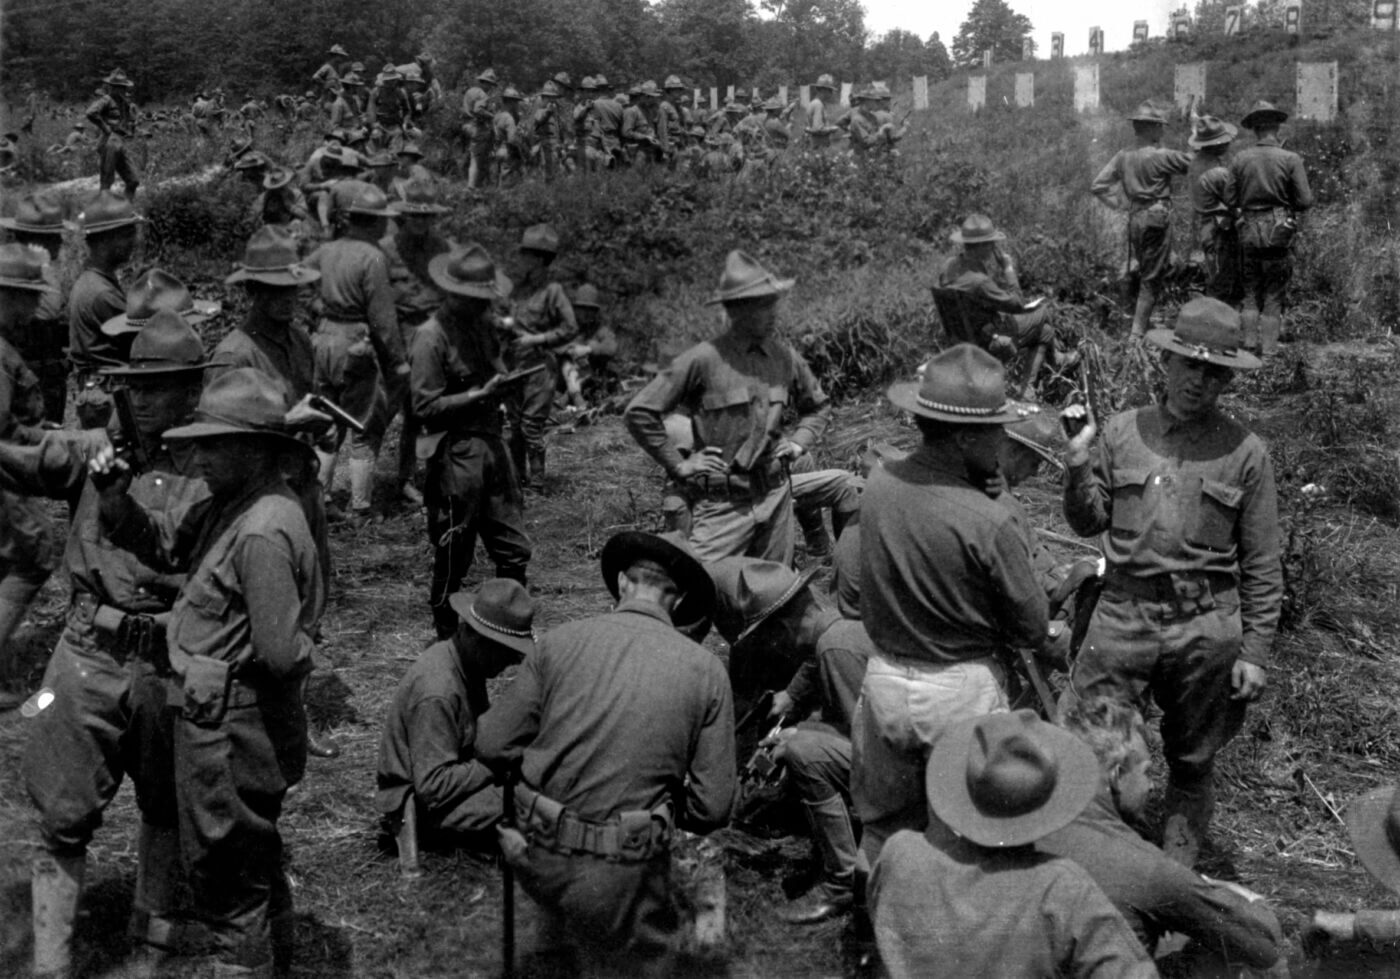 Recruit handgun training in the US Army during WWI